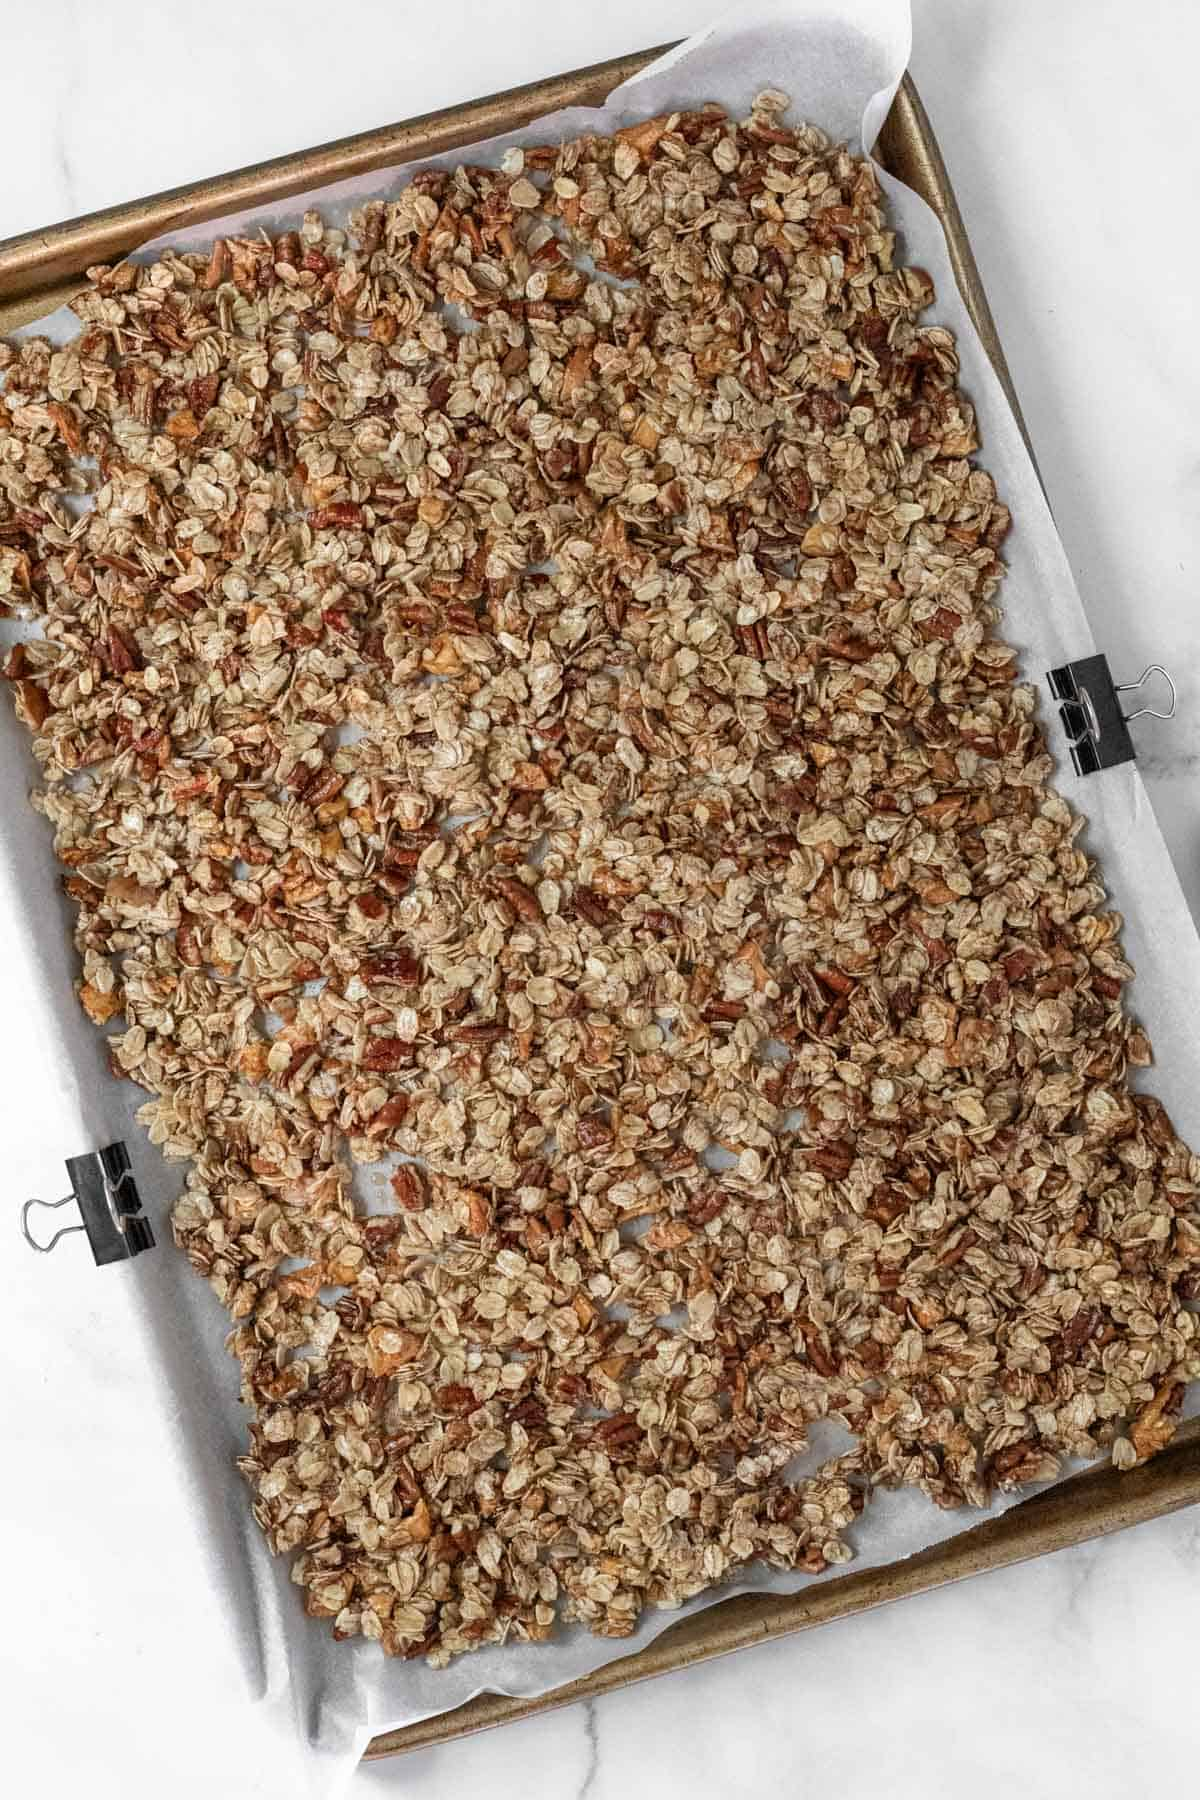 Granola ingredients spread out on a baking sheet before going in the oven.